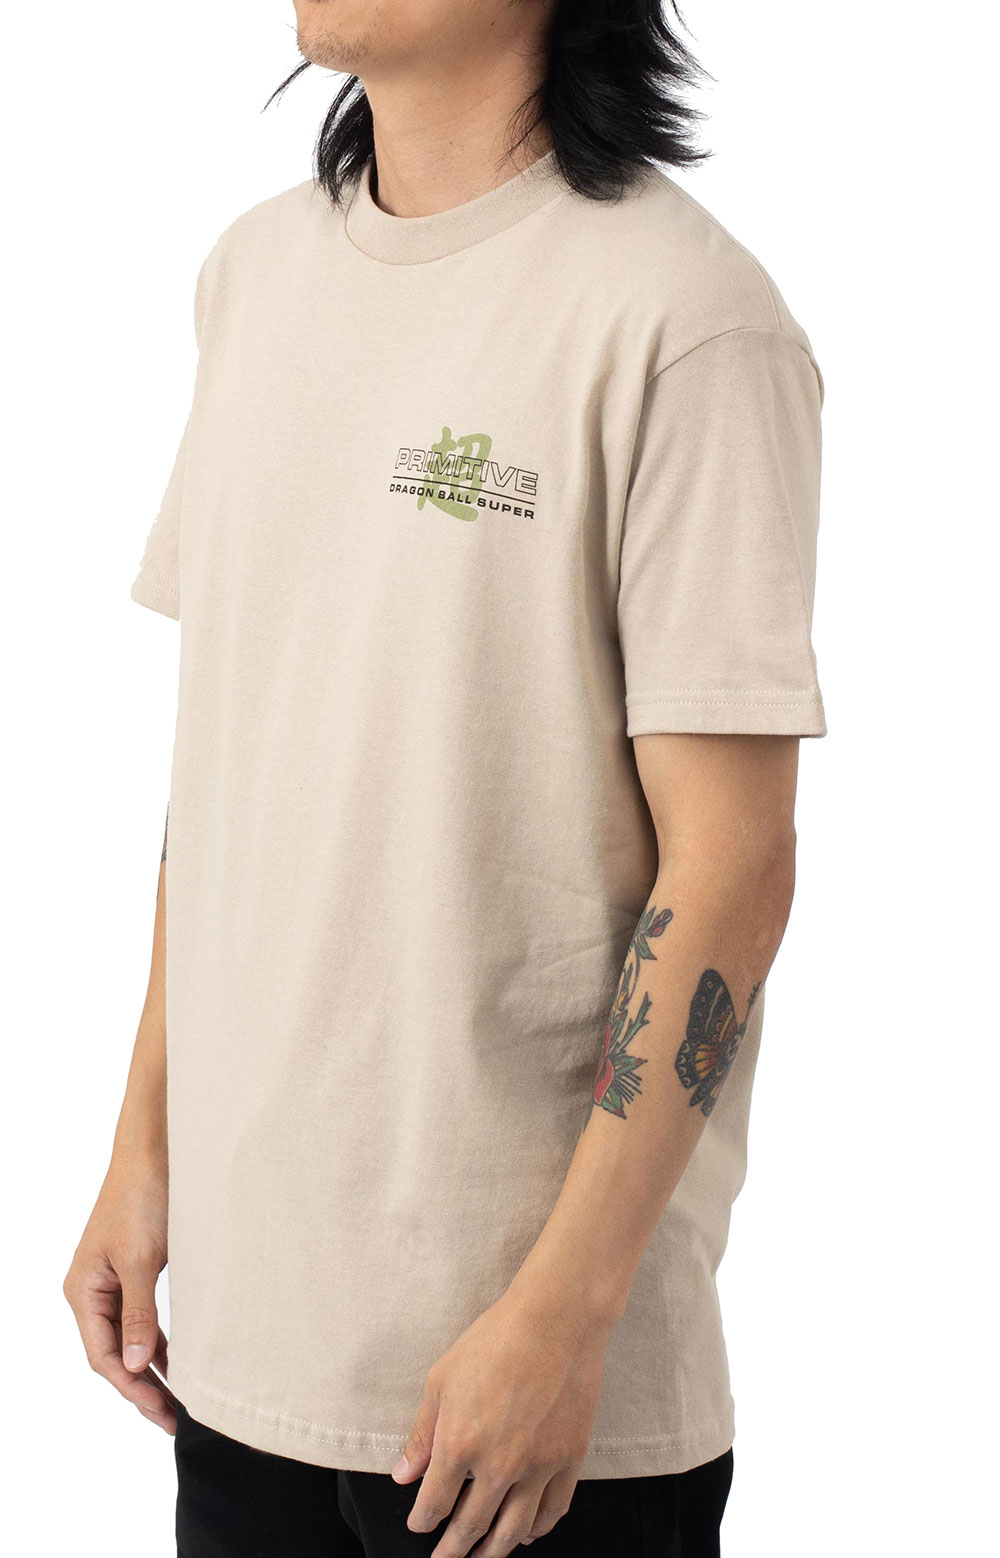 Victory Trunks T-Shirt - Sand  3